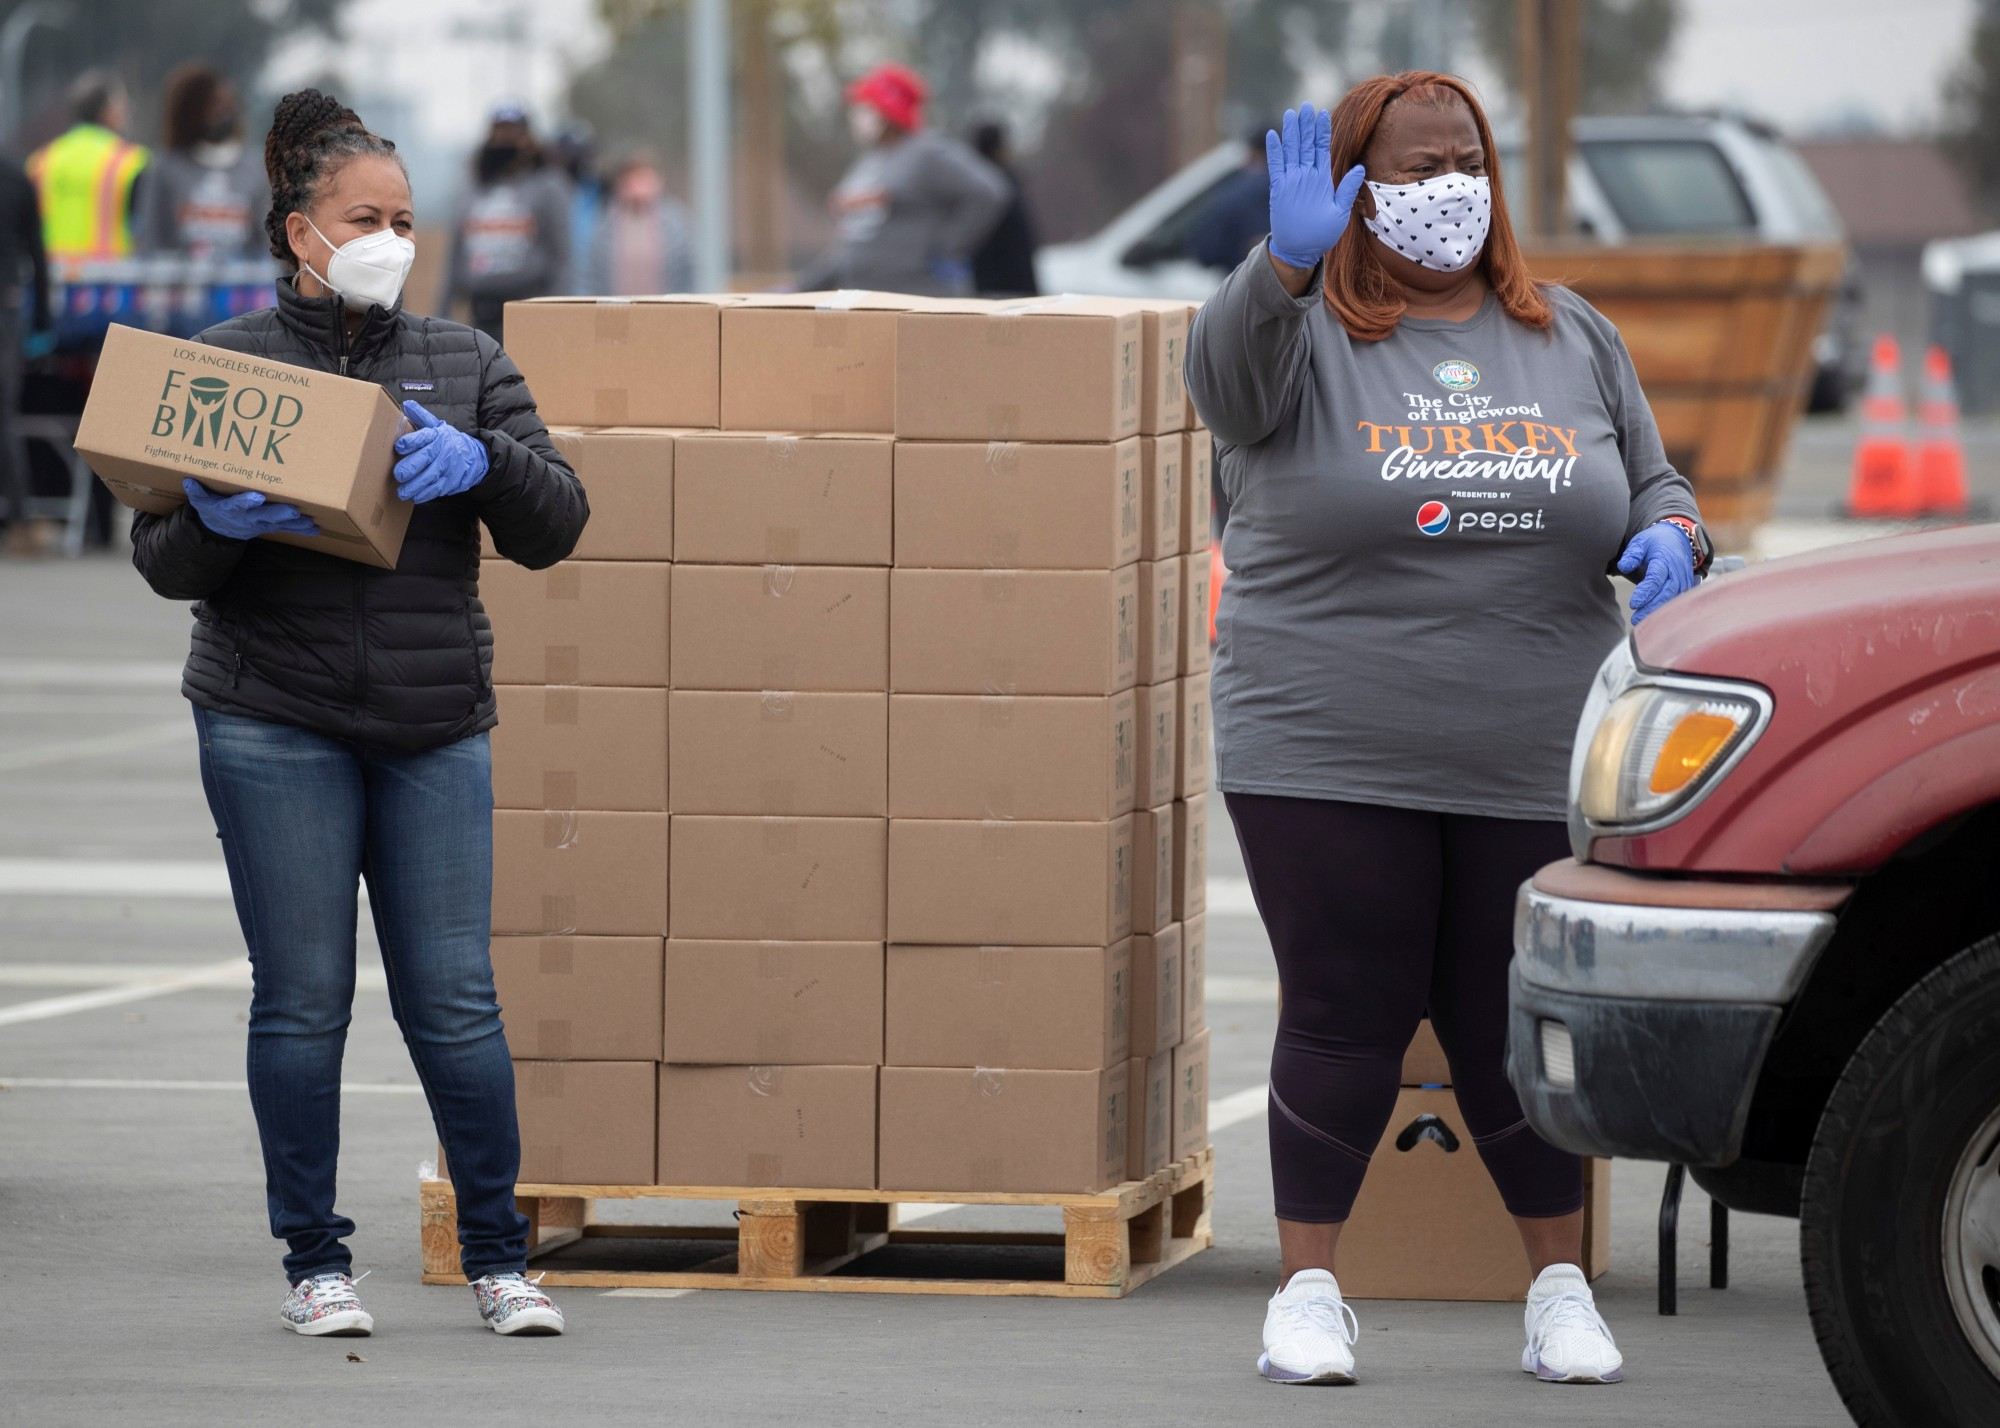 Volunteers at an annual Thanksgiving turkey giveaway, Inglewood, California, November 23, 2020. Photo by Mike Blake/Reuters